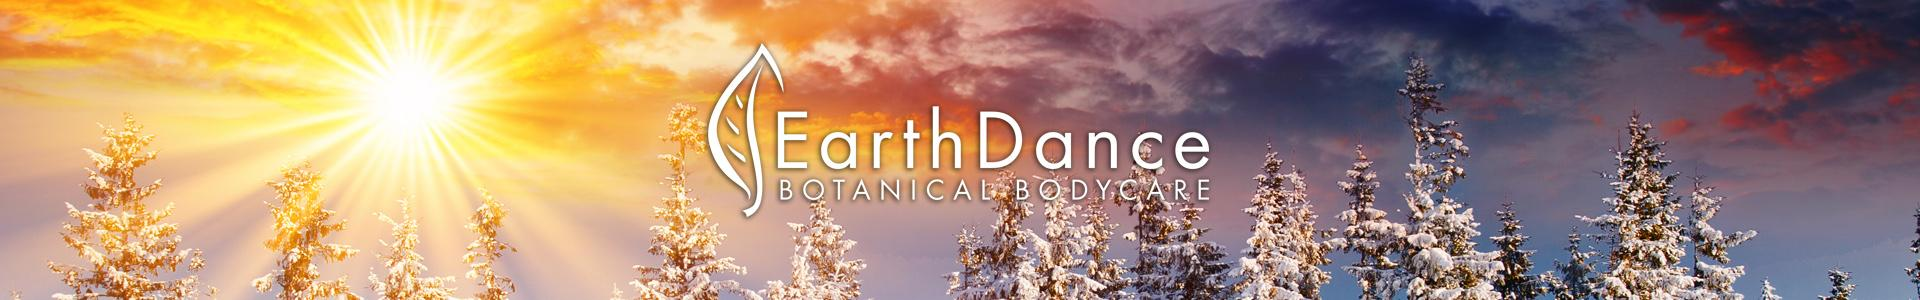 Earth Dance Botanical Bodycare logo